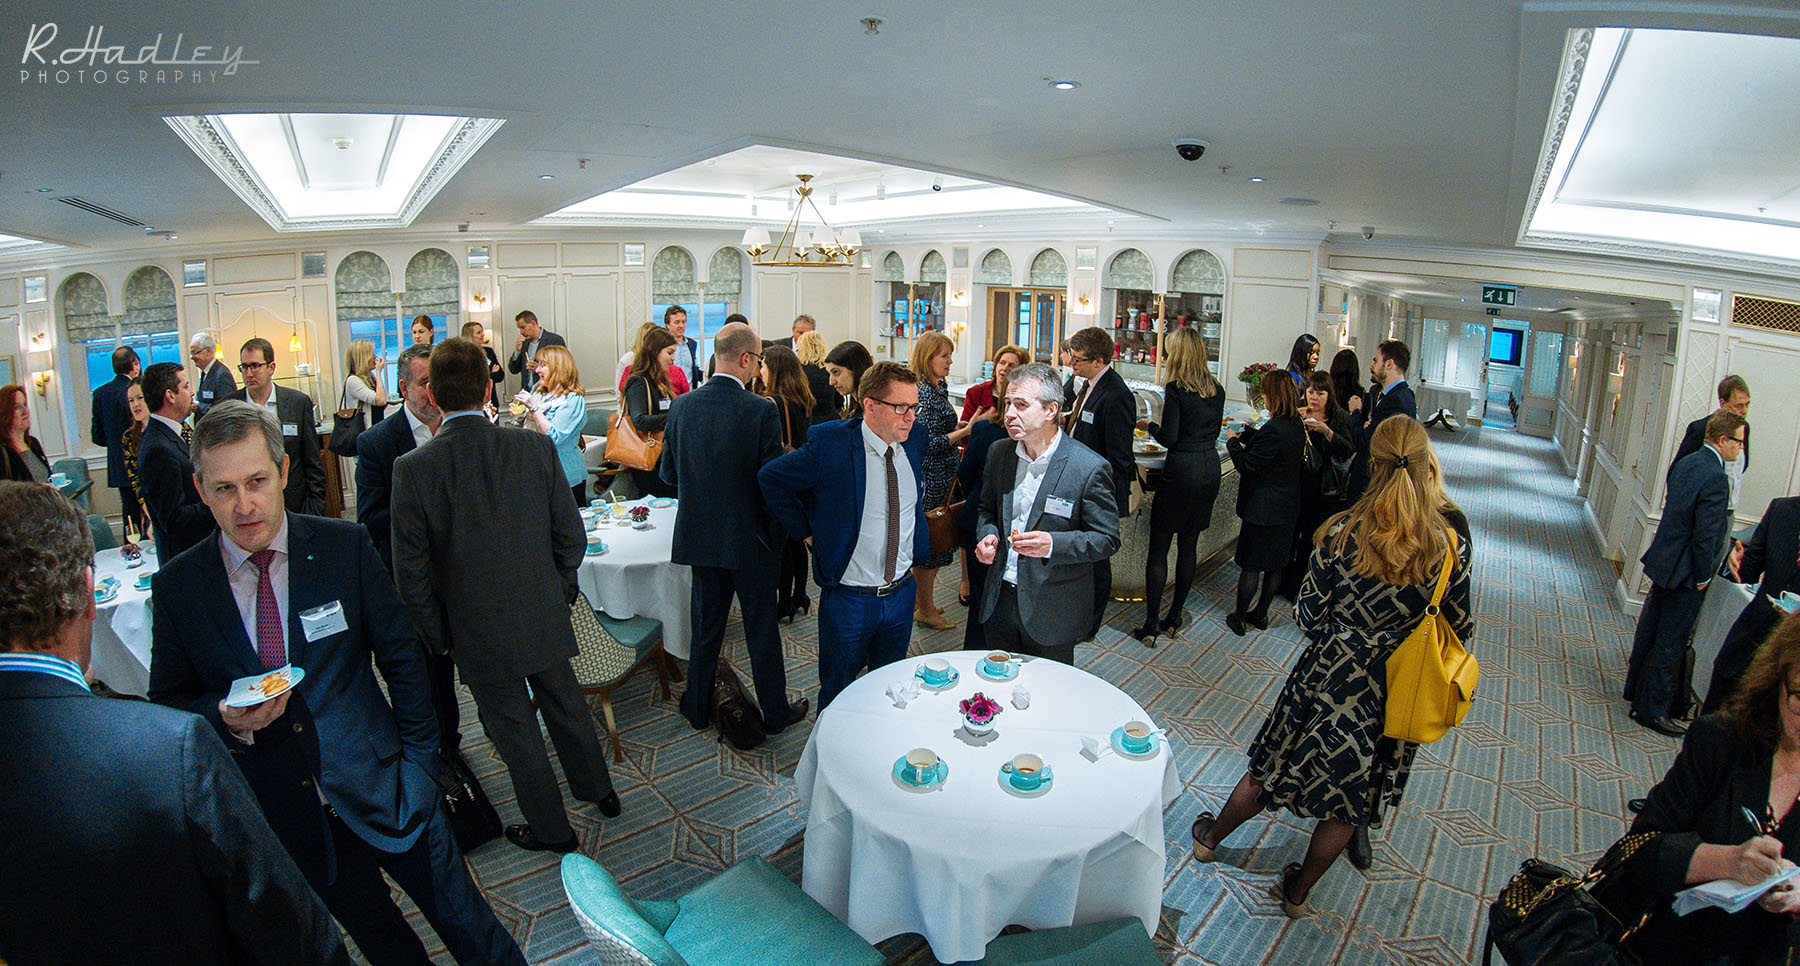 Event photographer in London at Fortnum & Mason